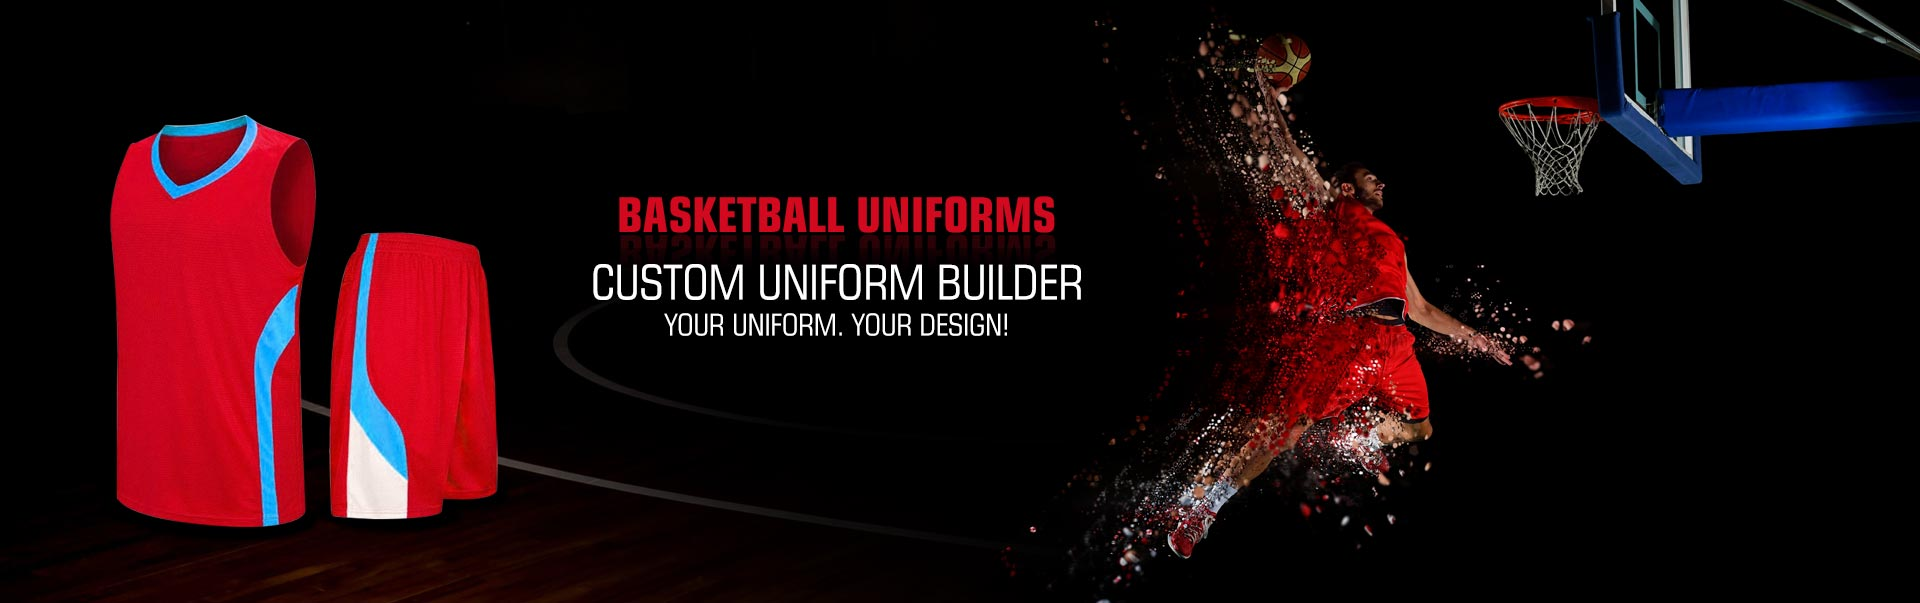 Basketball Uniforms Wholesaler, Suppliers in Bellevue